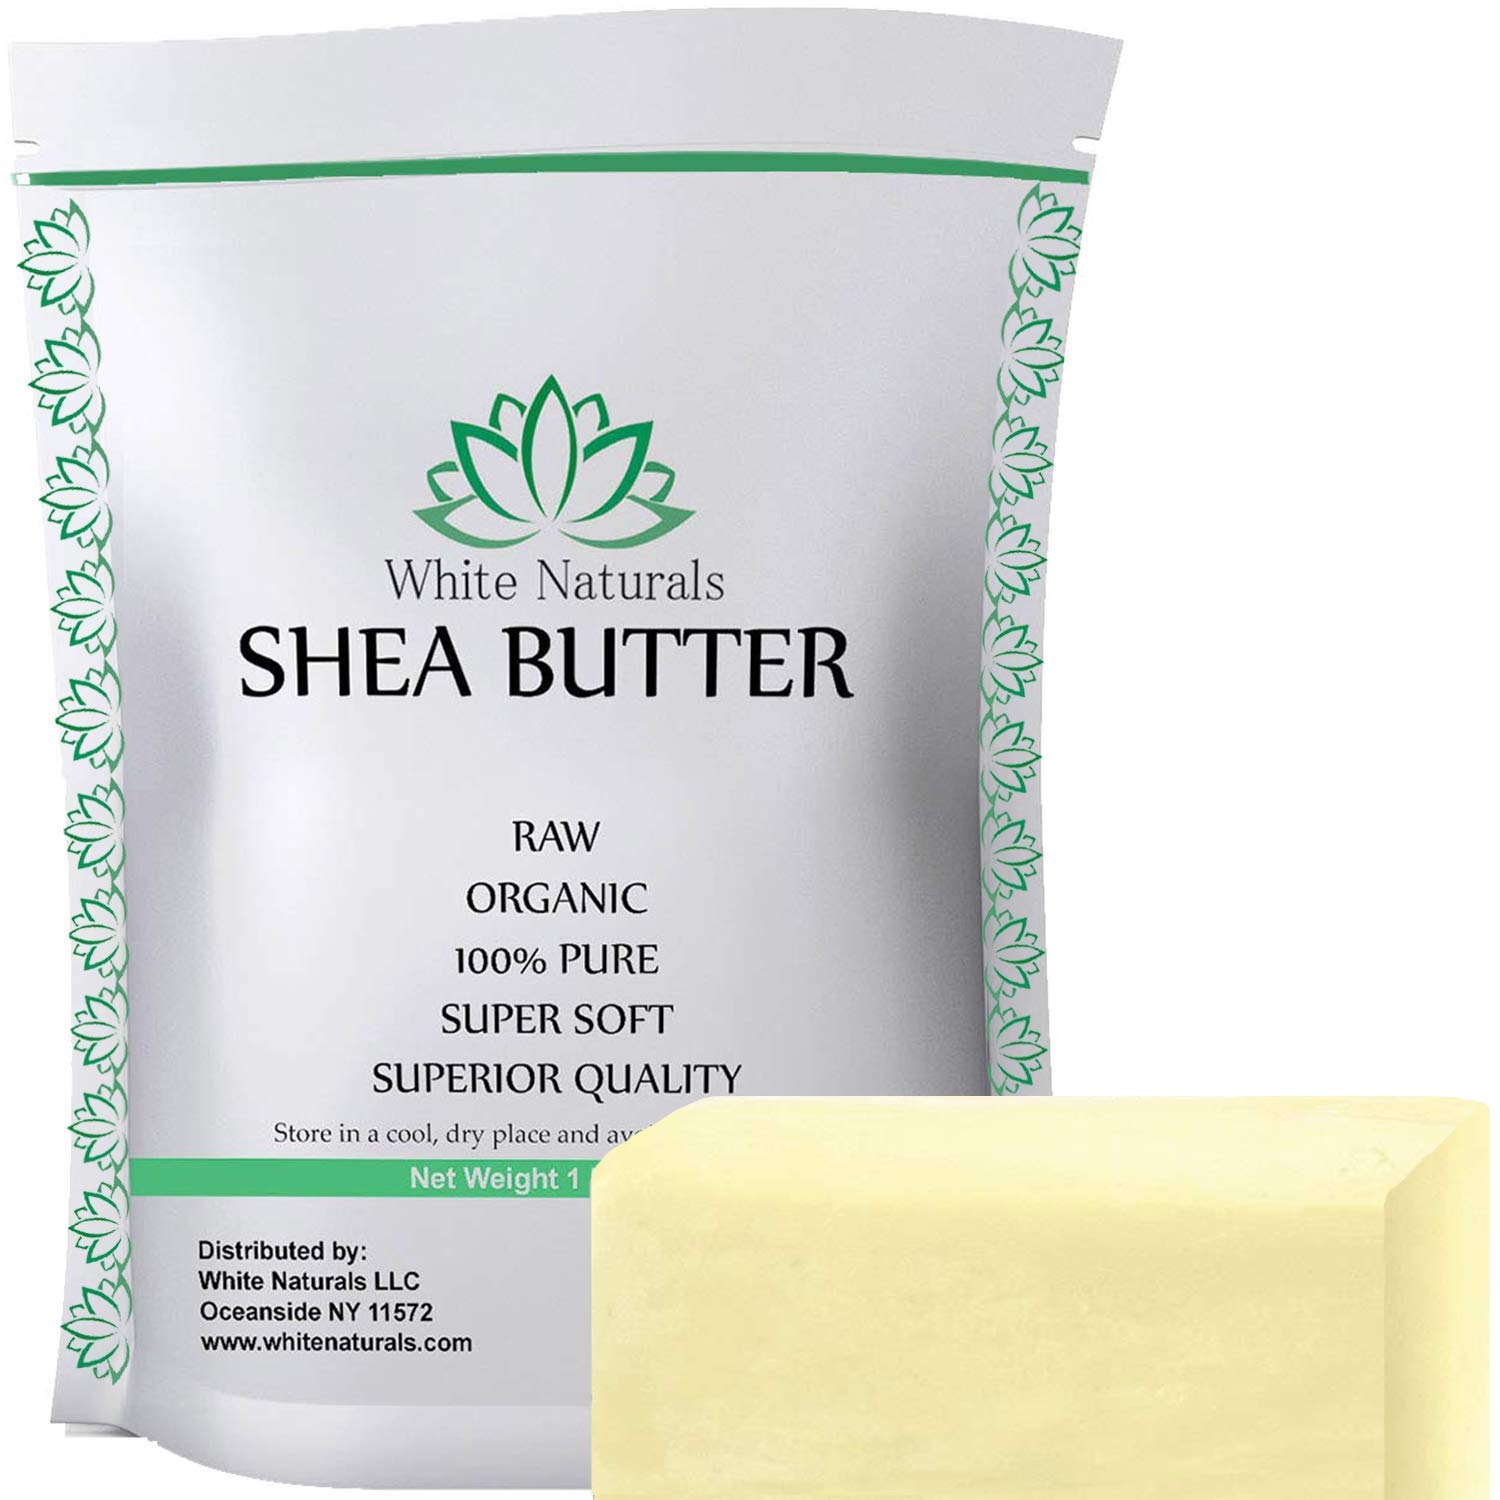 Limited Time Sale! Unrefined African Shea Butter 1 lb Pure, Raw,Grade A,Ivory, Perfect Skin Moisturizer, DIY Lip Balms, Stretch Marks, Eczema,Acne,Recover Sun Damage,Kids Cream 16 oz by White Naturals